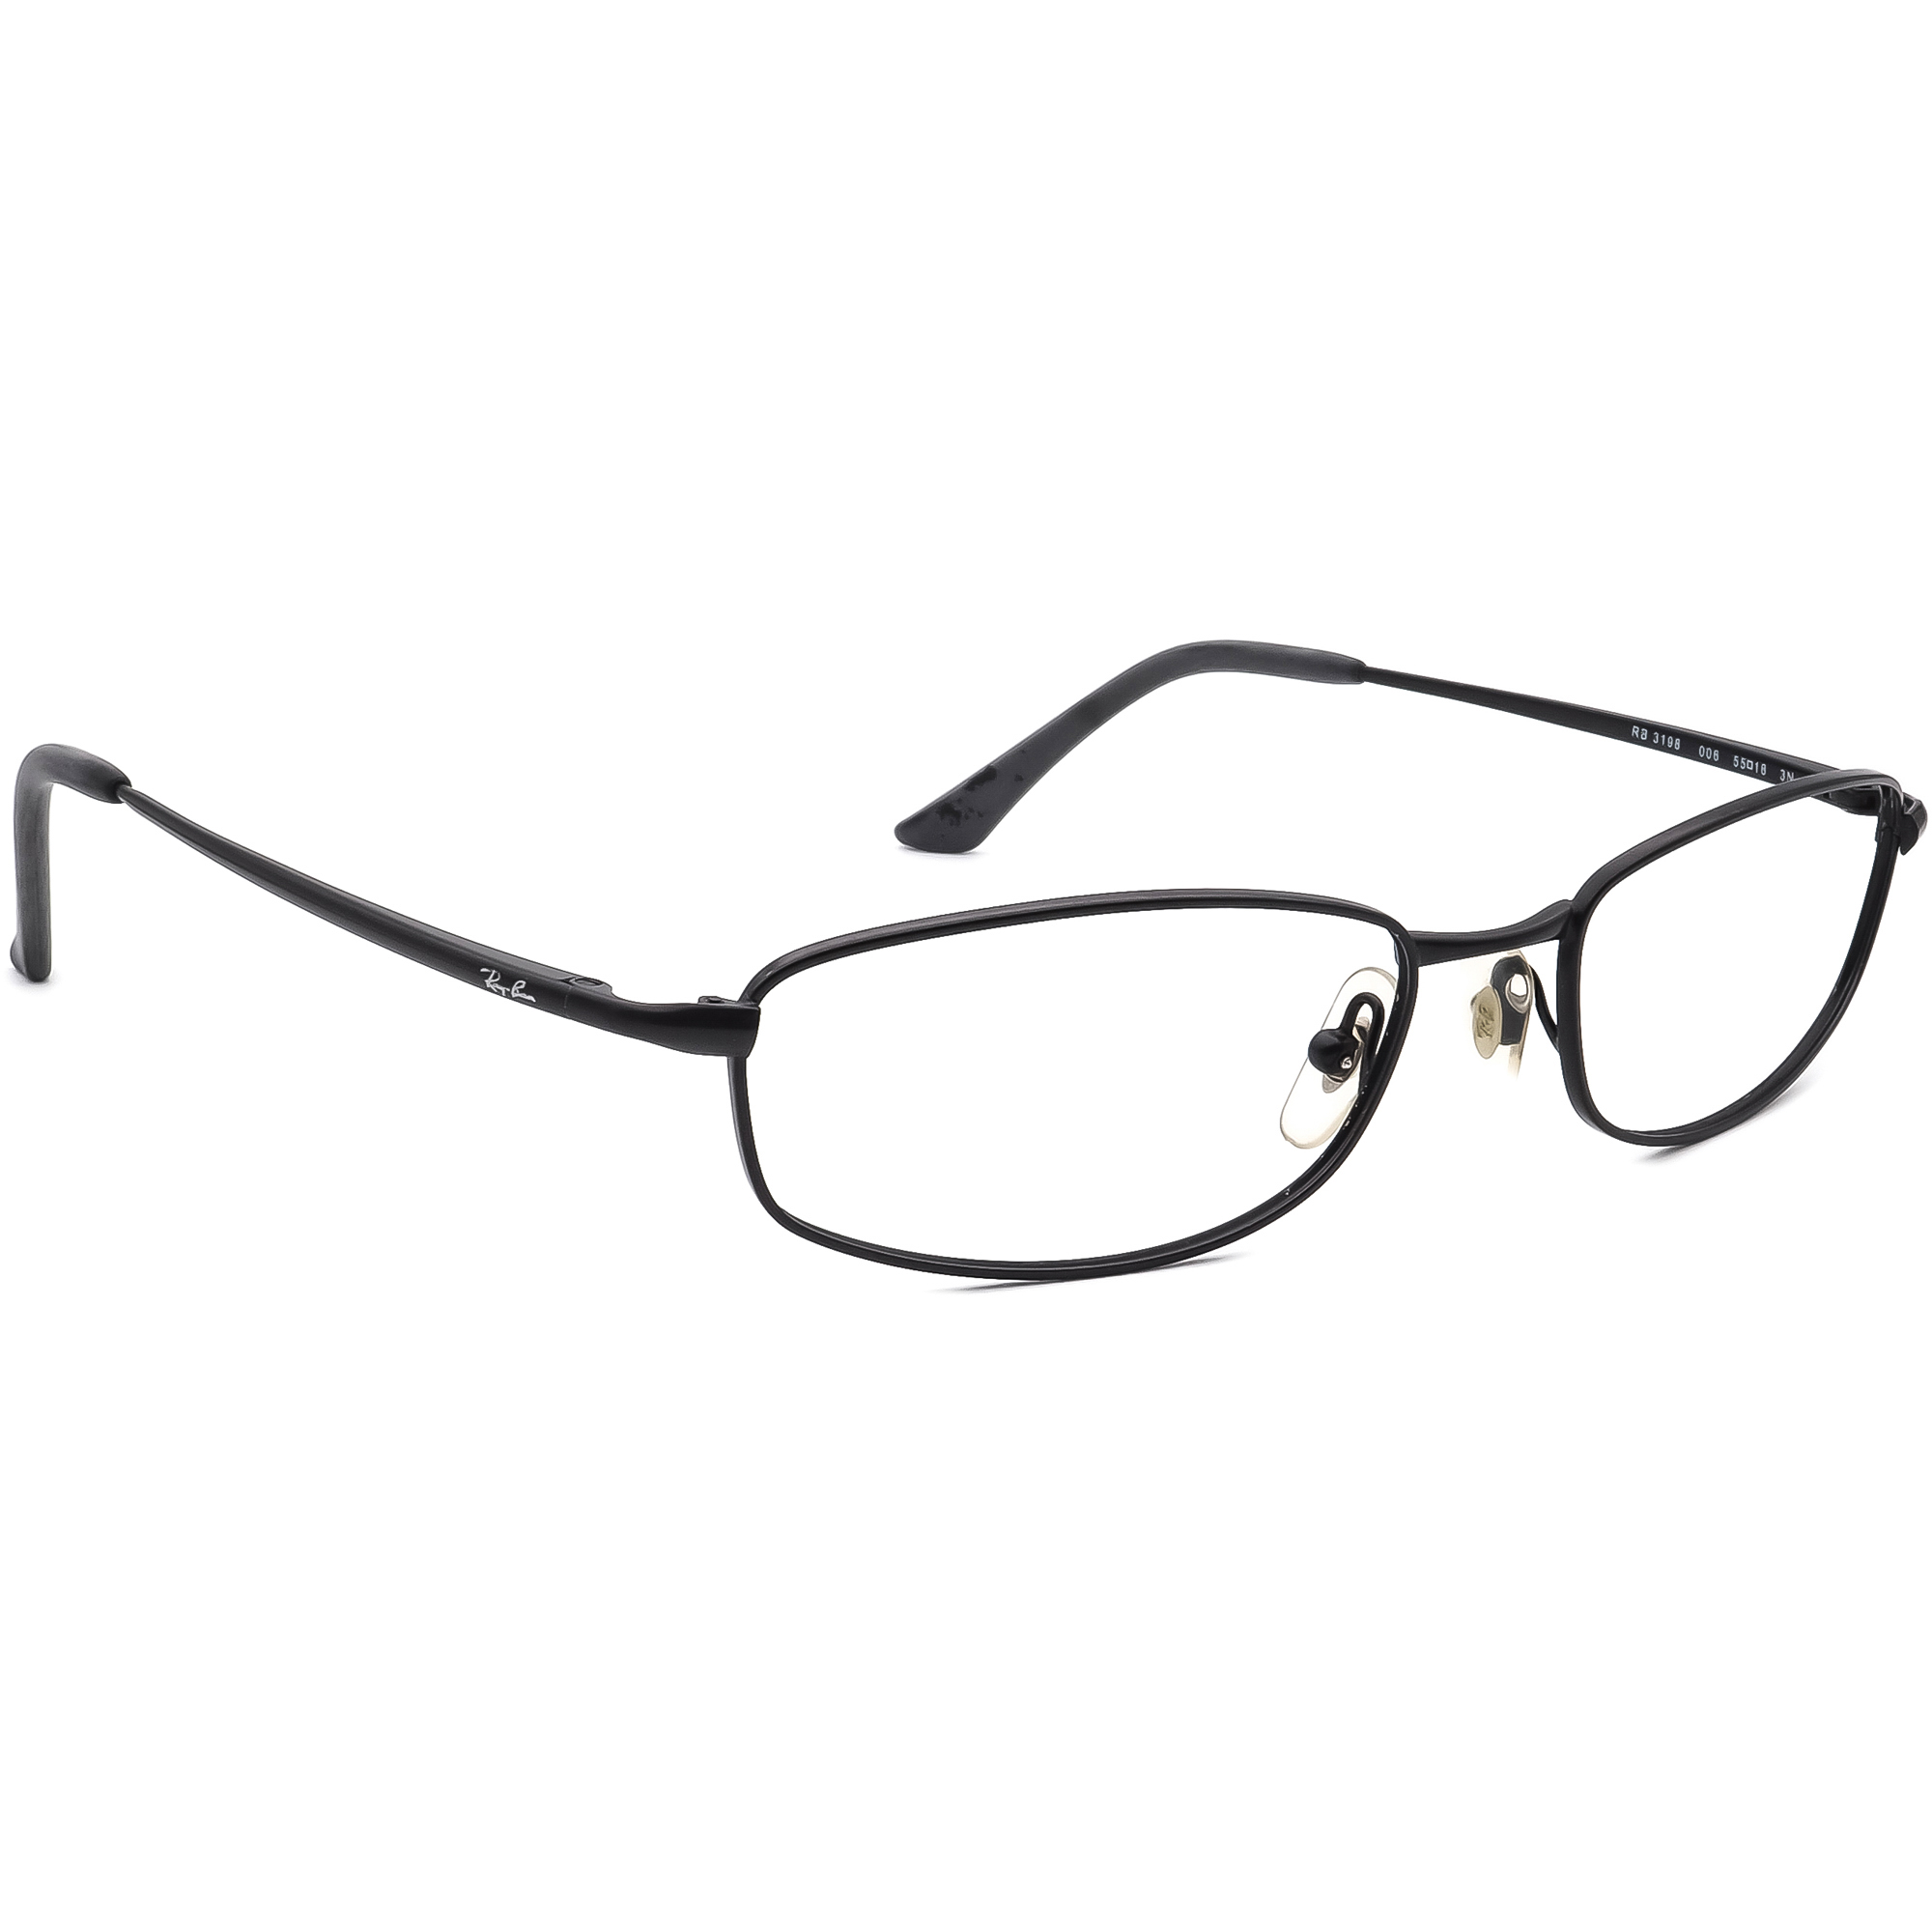 Ray-Ban RB 3198 006 Sunglasses Frame Only